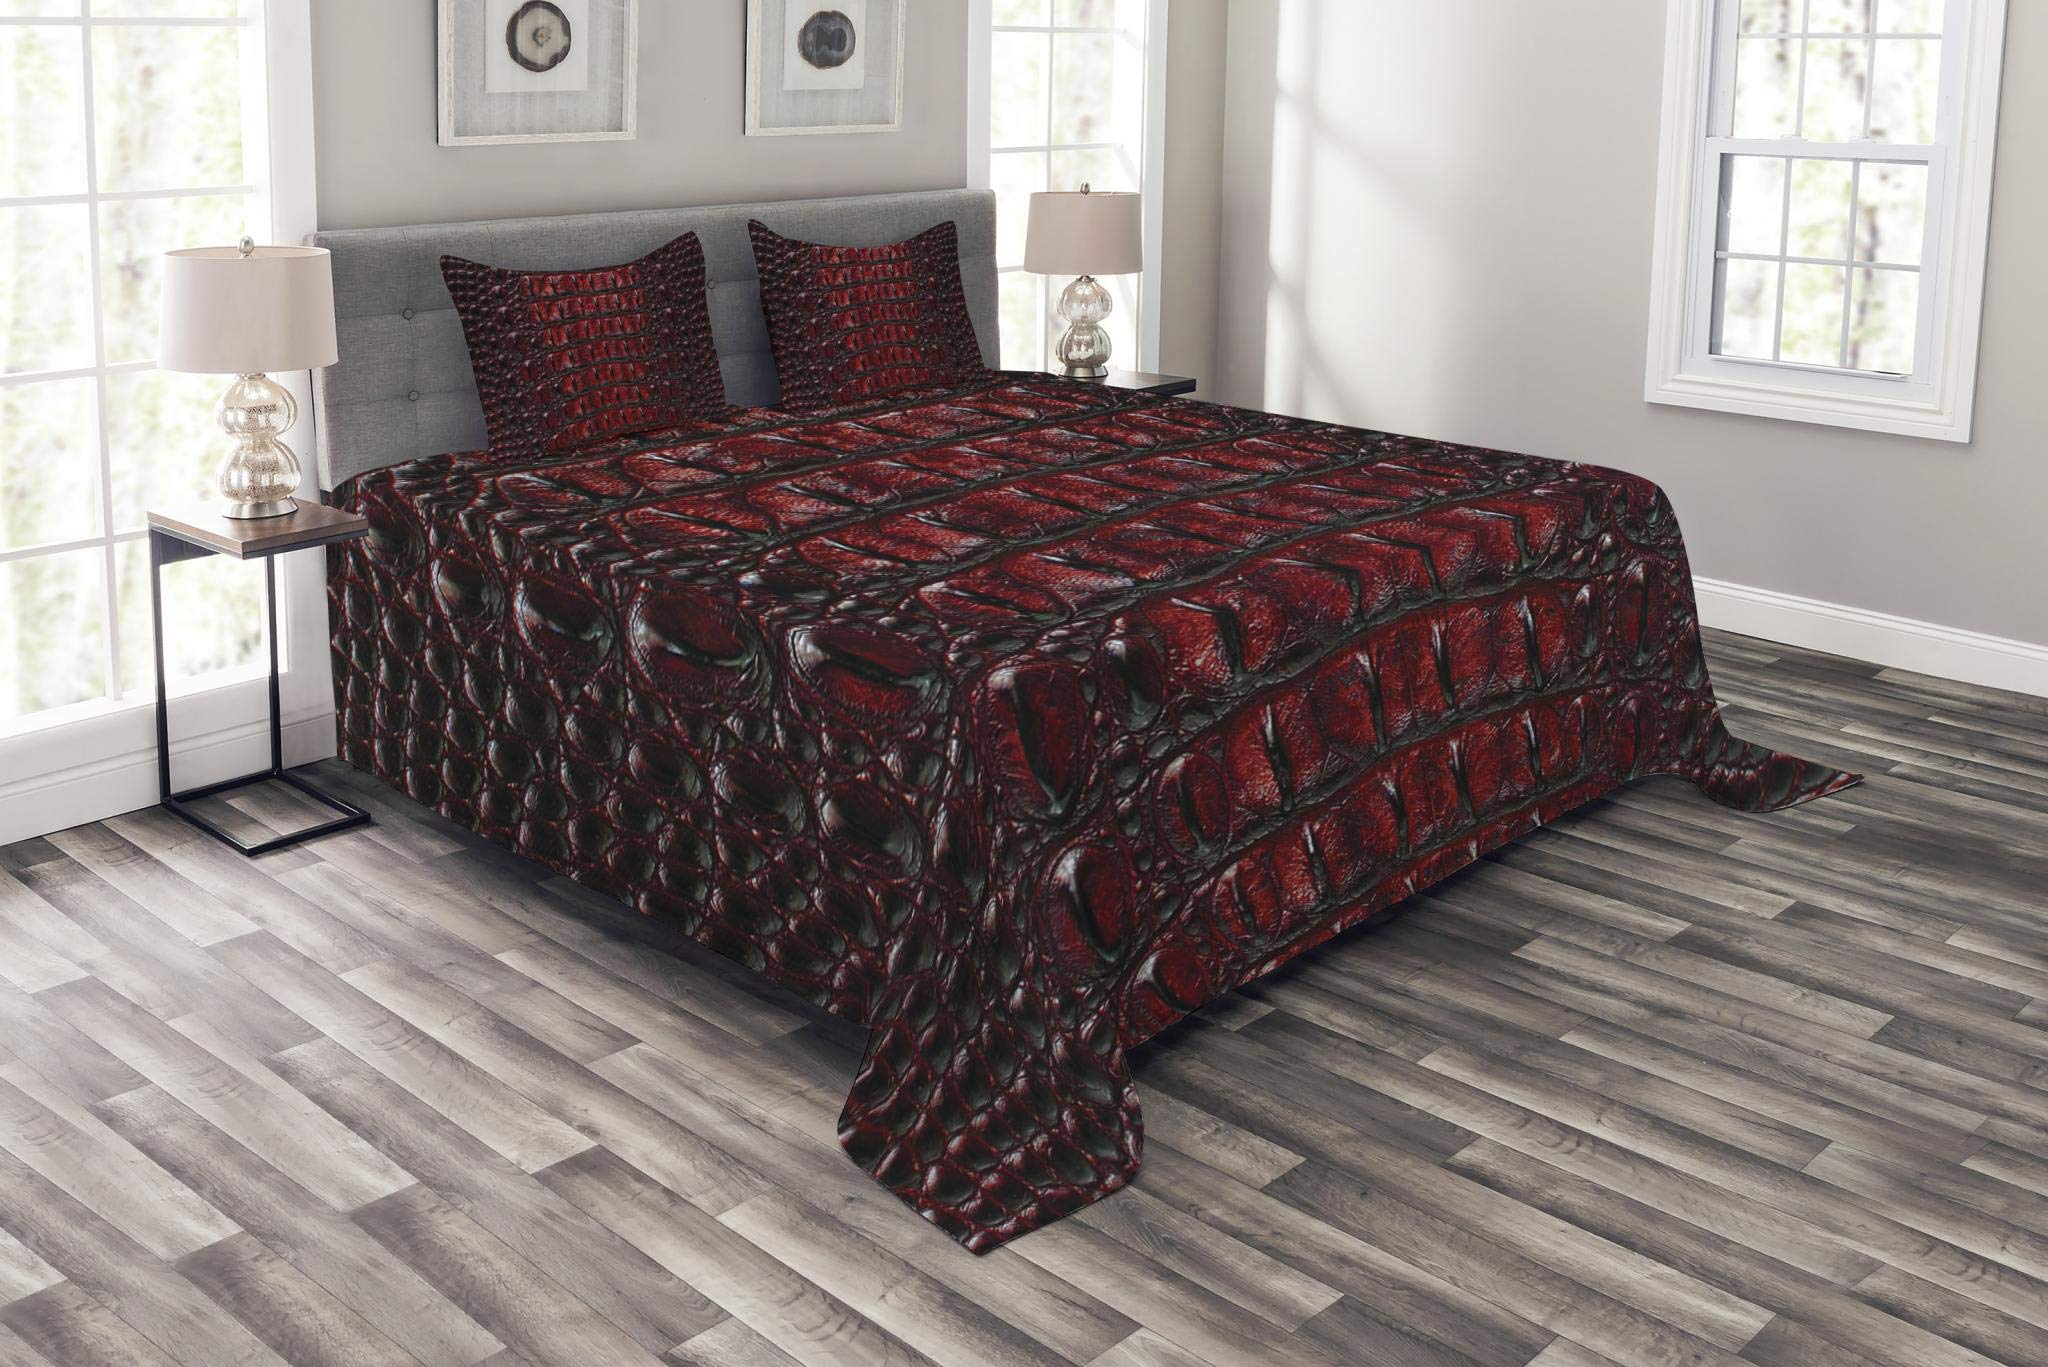 Lunarable Animal Print Bedspread Set King Size, Freshwater Crocodile Bone Skin Pattern Tropical Wilderness Fashion Themed Art, Decorative Quilted 3 Piece Coverlet Set with 2 Pillow Shams, Burgundy